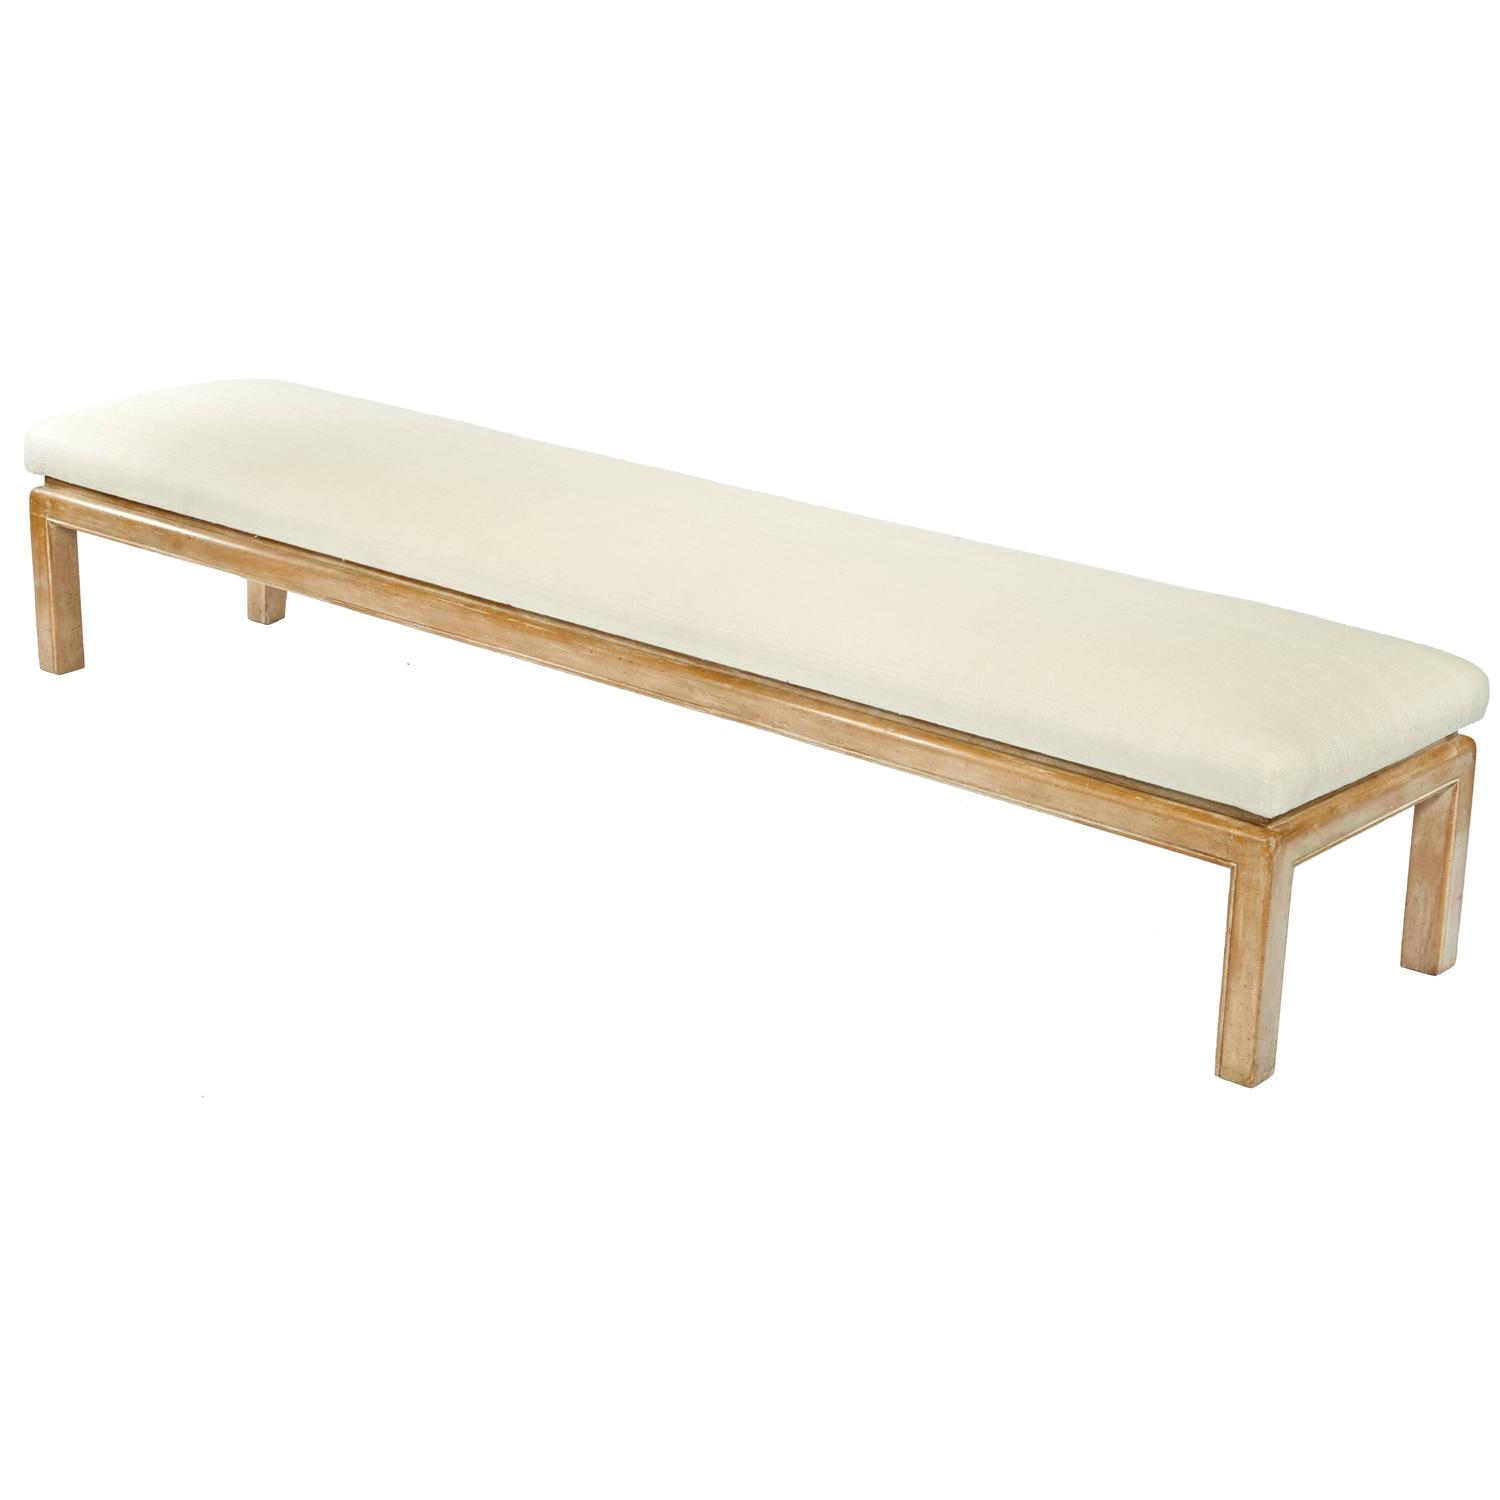 Samuel Marx  7' Bench in Limed Finish with Silk Upholstery $24,000